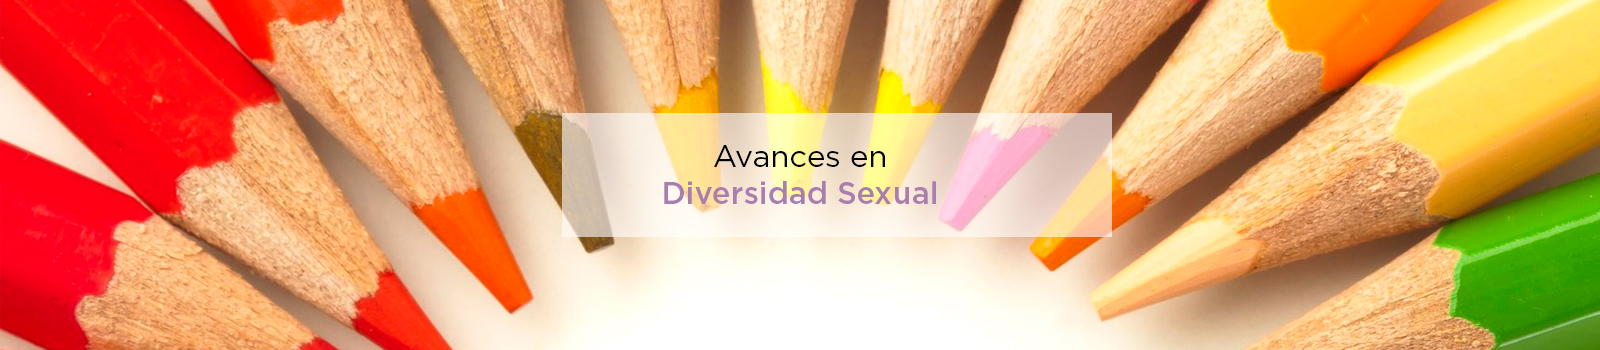 Diversidad sexual 2018